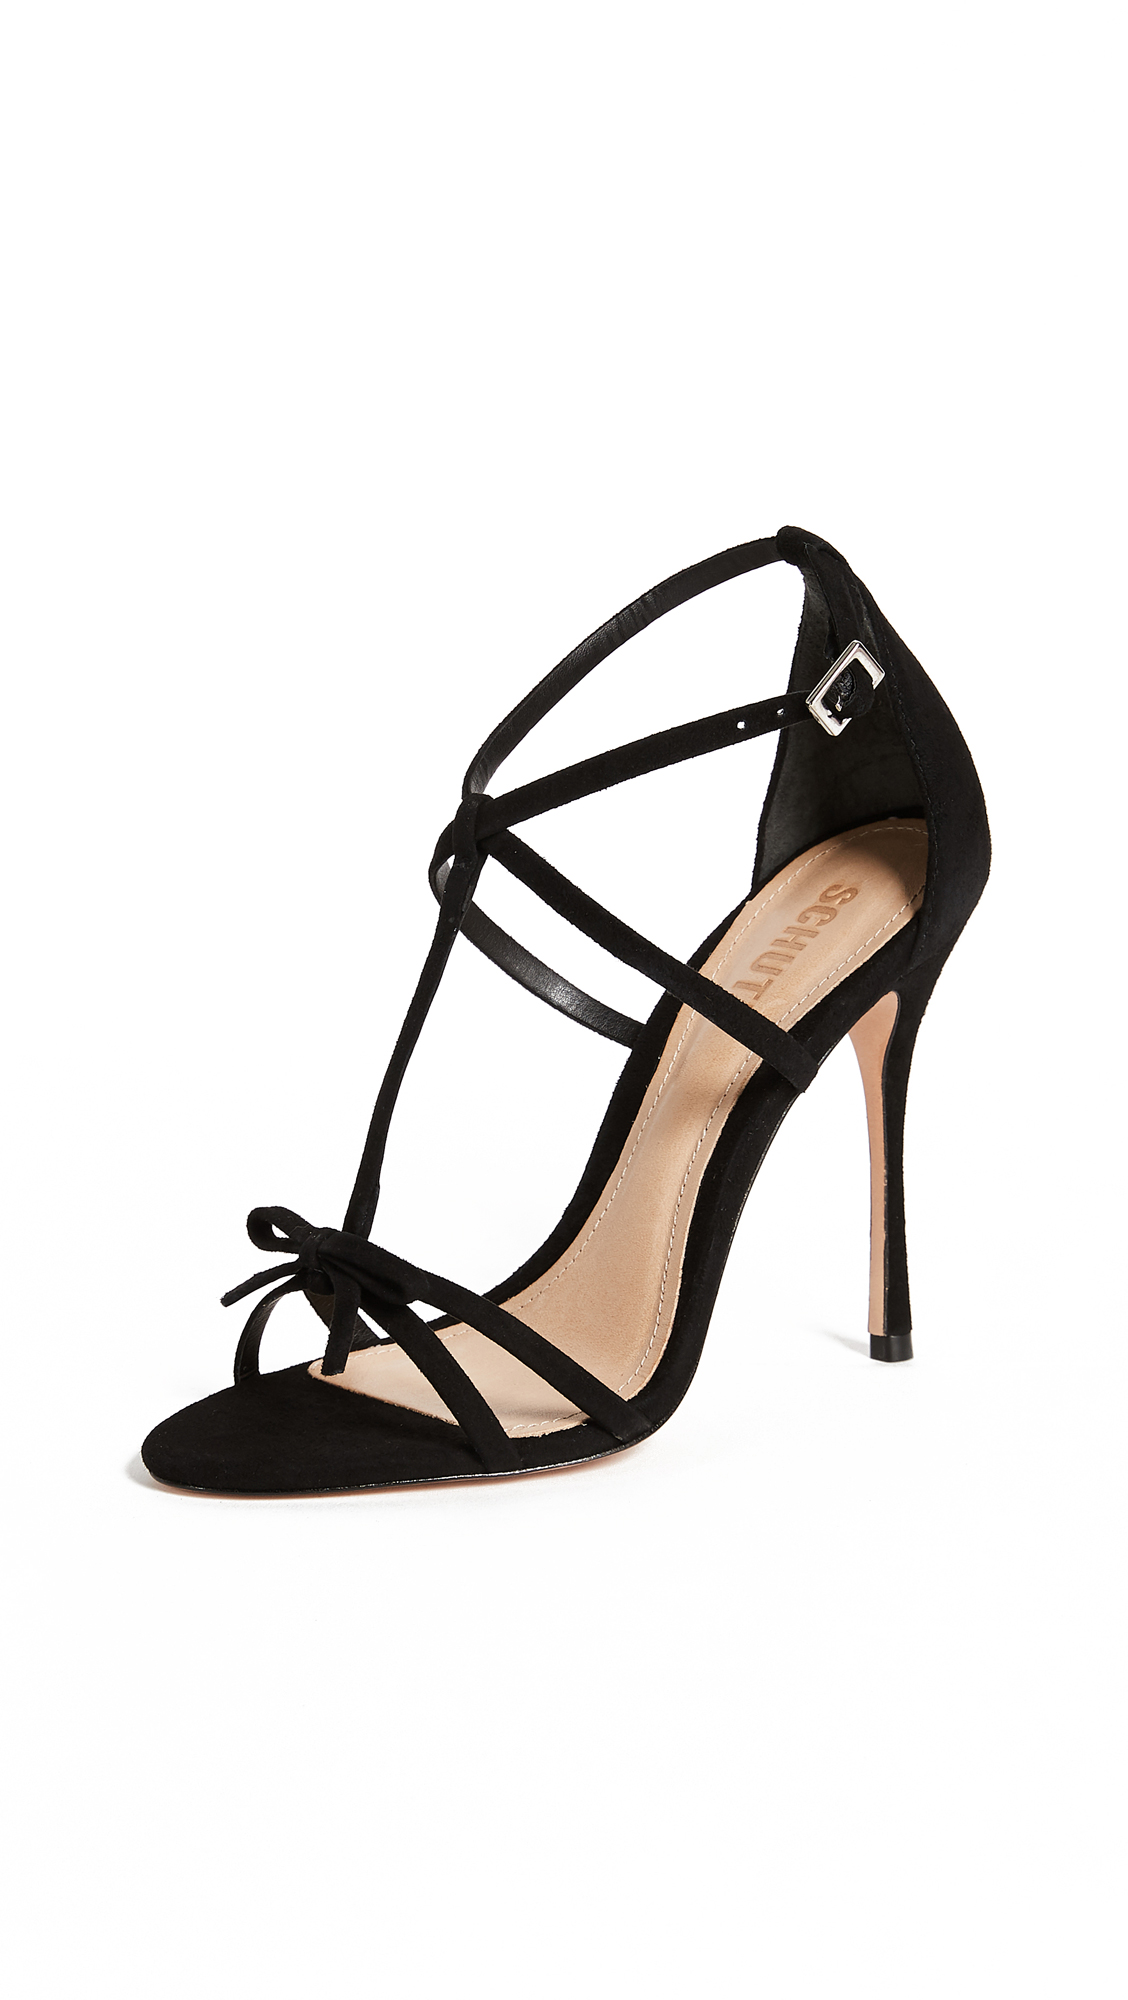 Schutz Sabina Strappy Sandals - Black